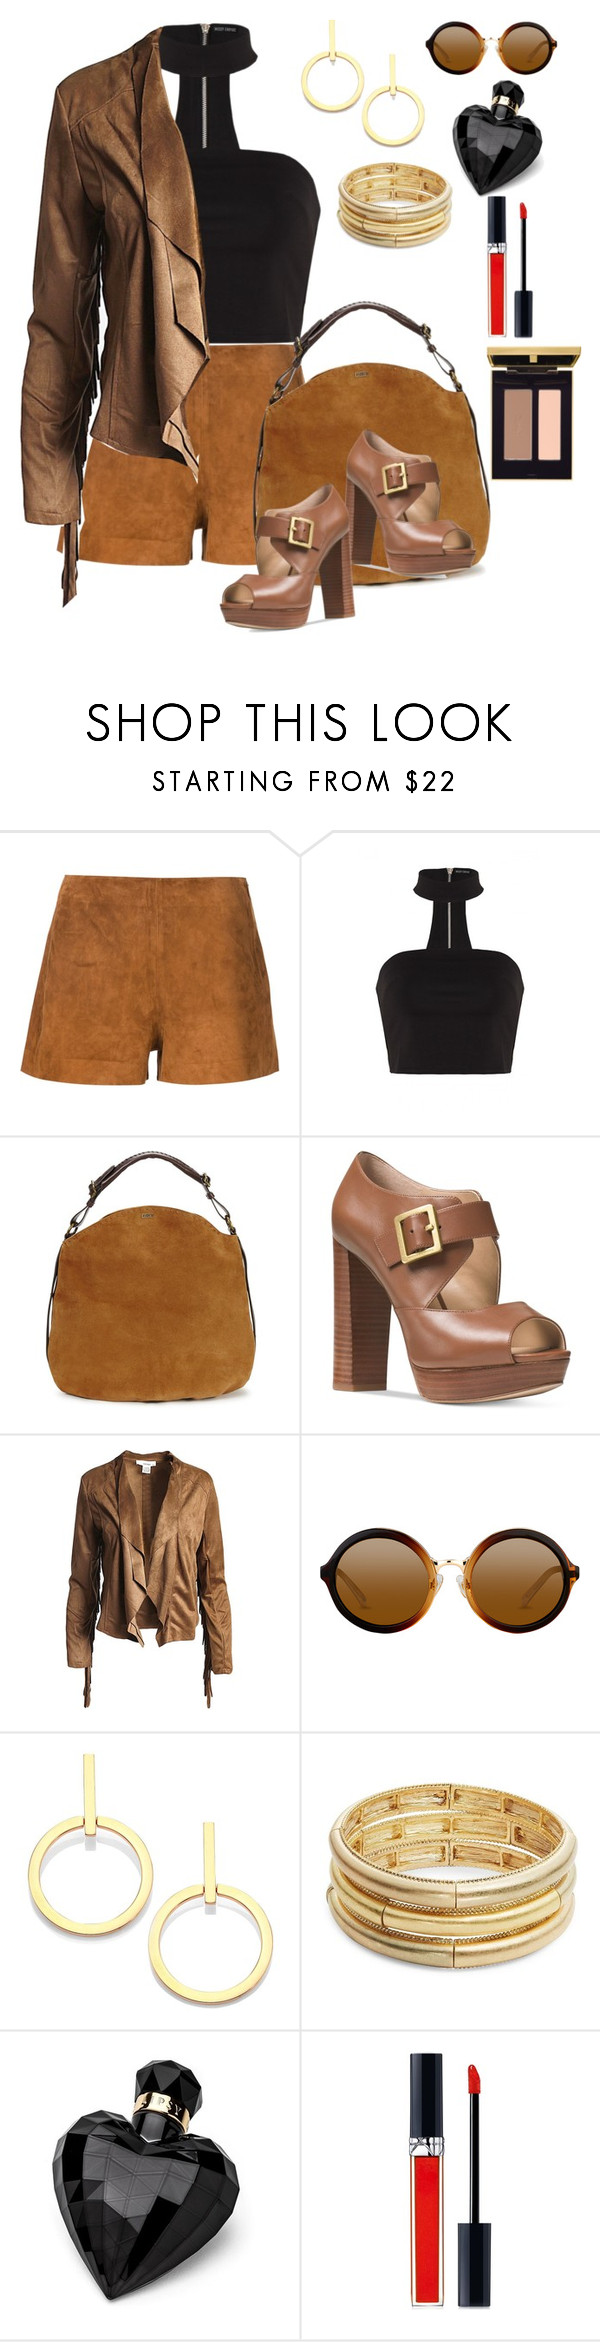 """Friday nite out!"" by stelladallas6369 ❤ liked on Polyvore featuring rag & bone, UGG, Michael Kors, Sans Souci, Vita Fede, Nanette Lepore, Lipsy and Christian Dior"